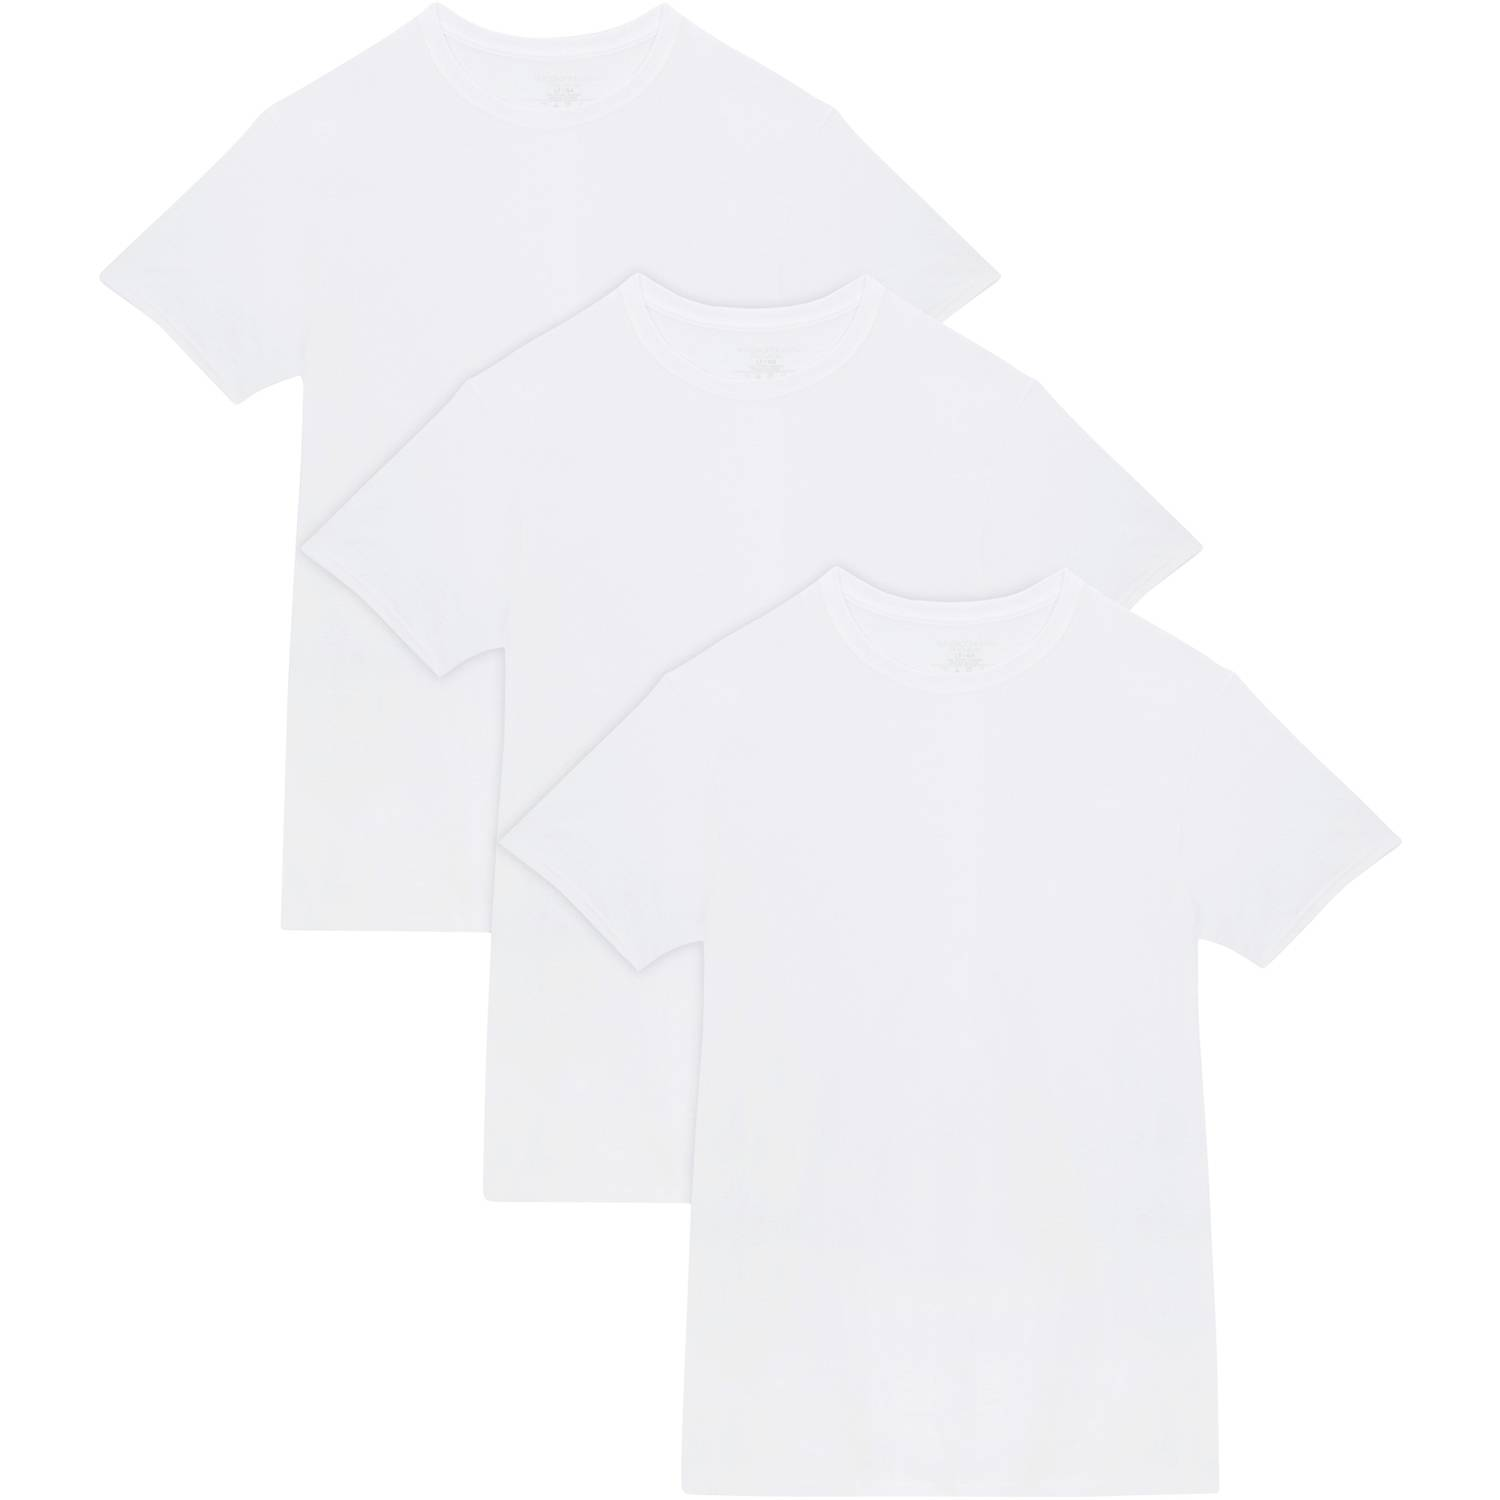 87dcfe57 Fruit of the Loom - Tall Men's Collection White Crews Extended Sizes up to  3XLT, 3-Pack - Walmart.com